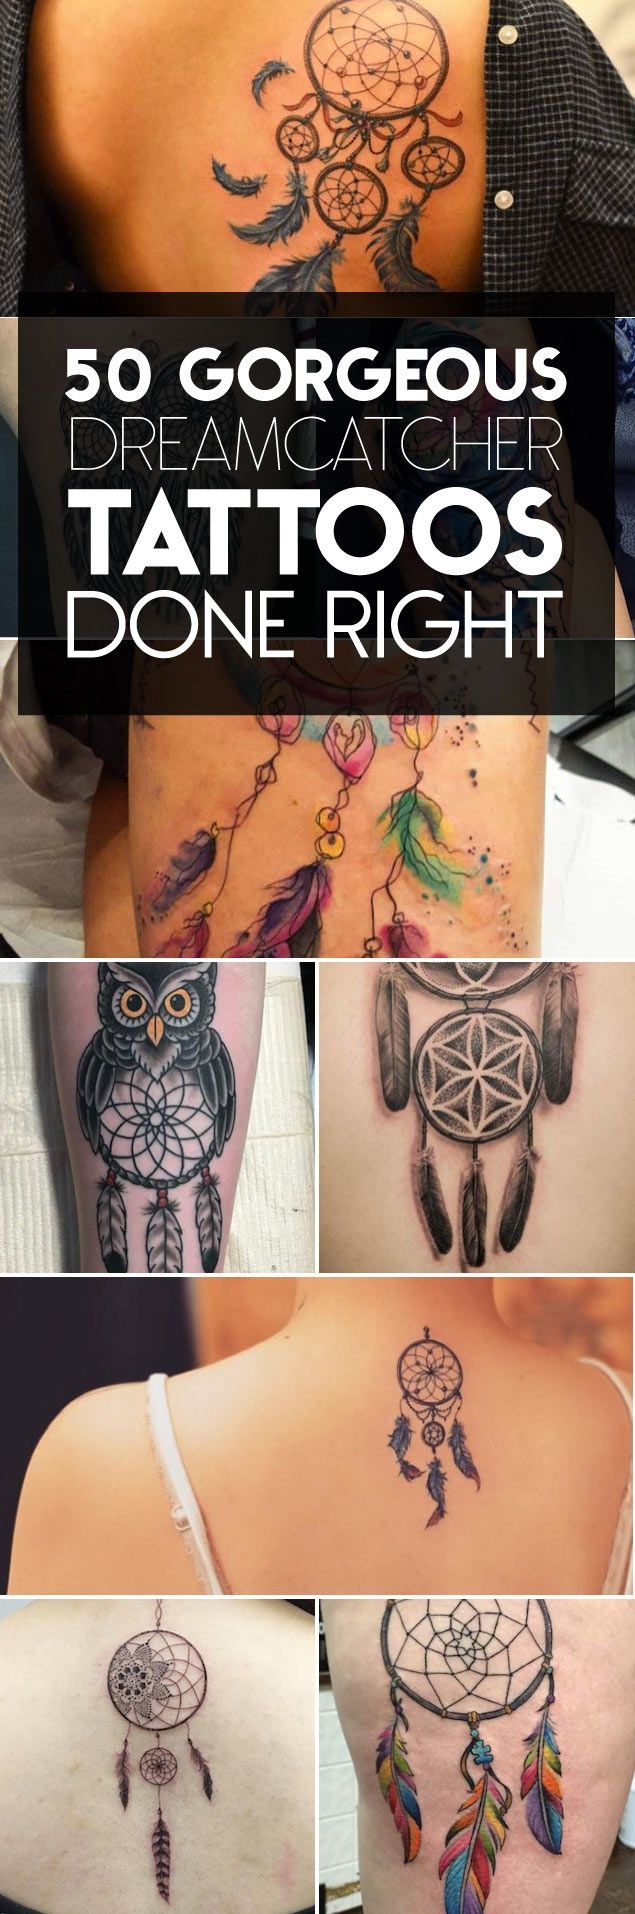 Amazing Dreamcatcher Tattoo Designs & Ideas